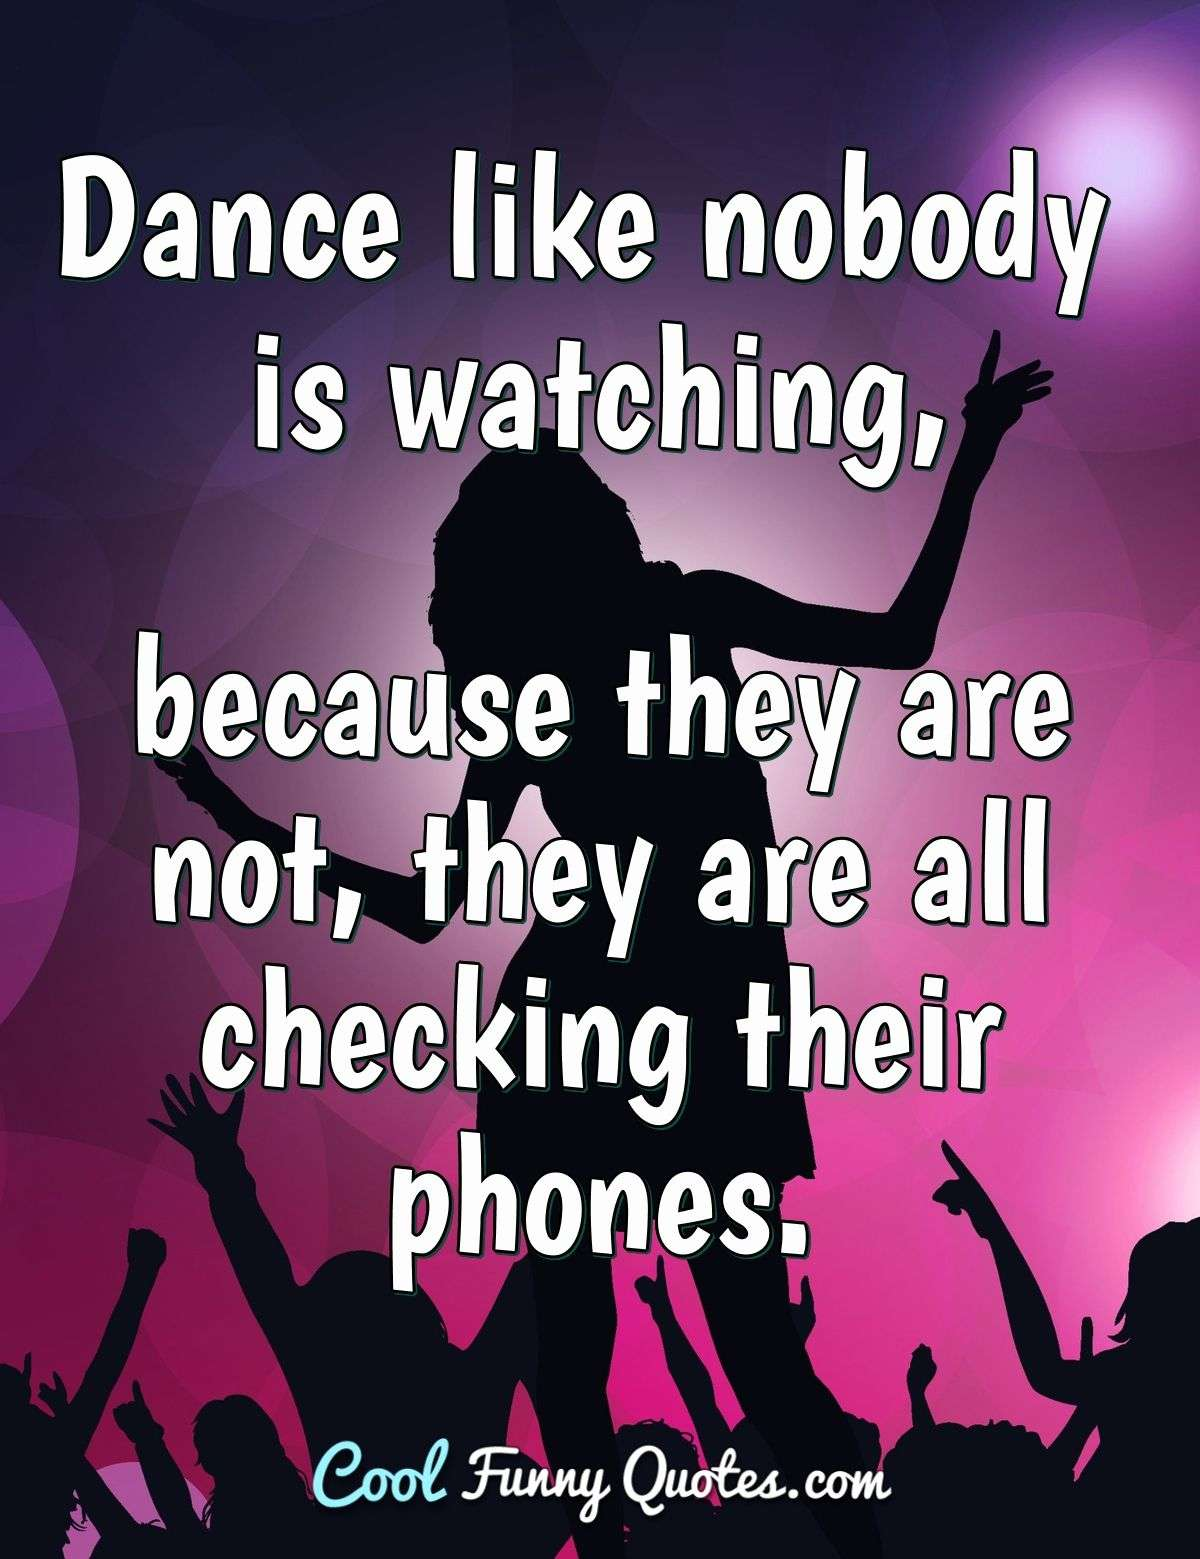 Dance like nobody is watching, because they are not, they are all checking their phones. - Anonymous